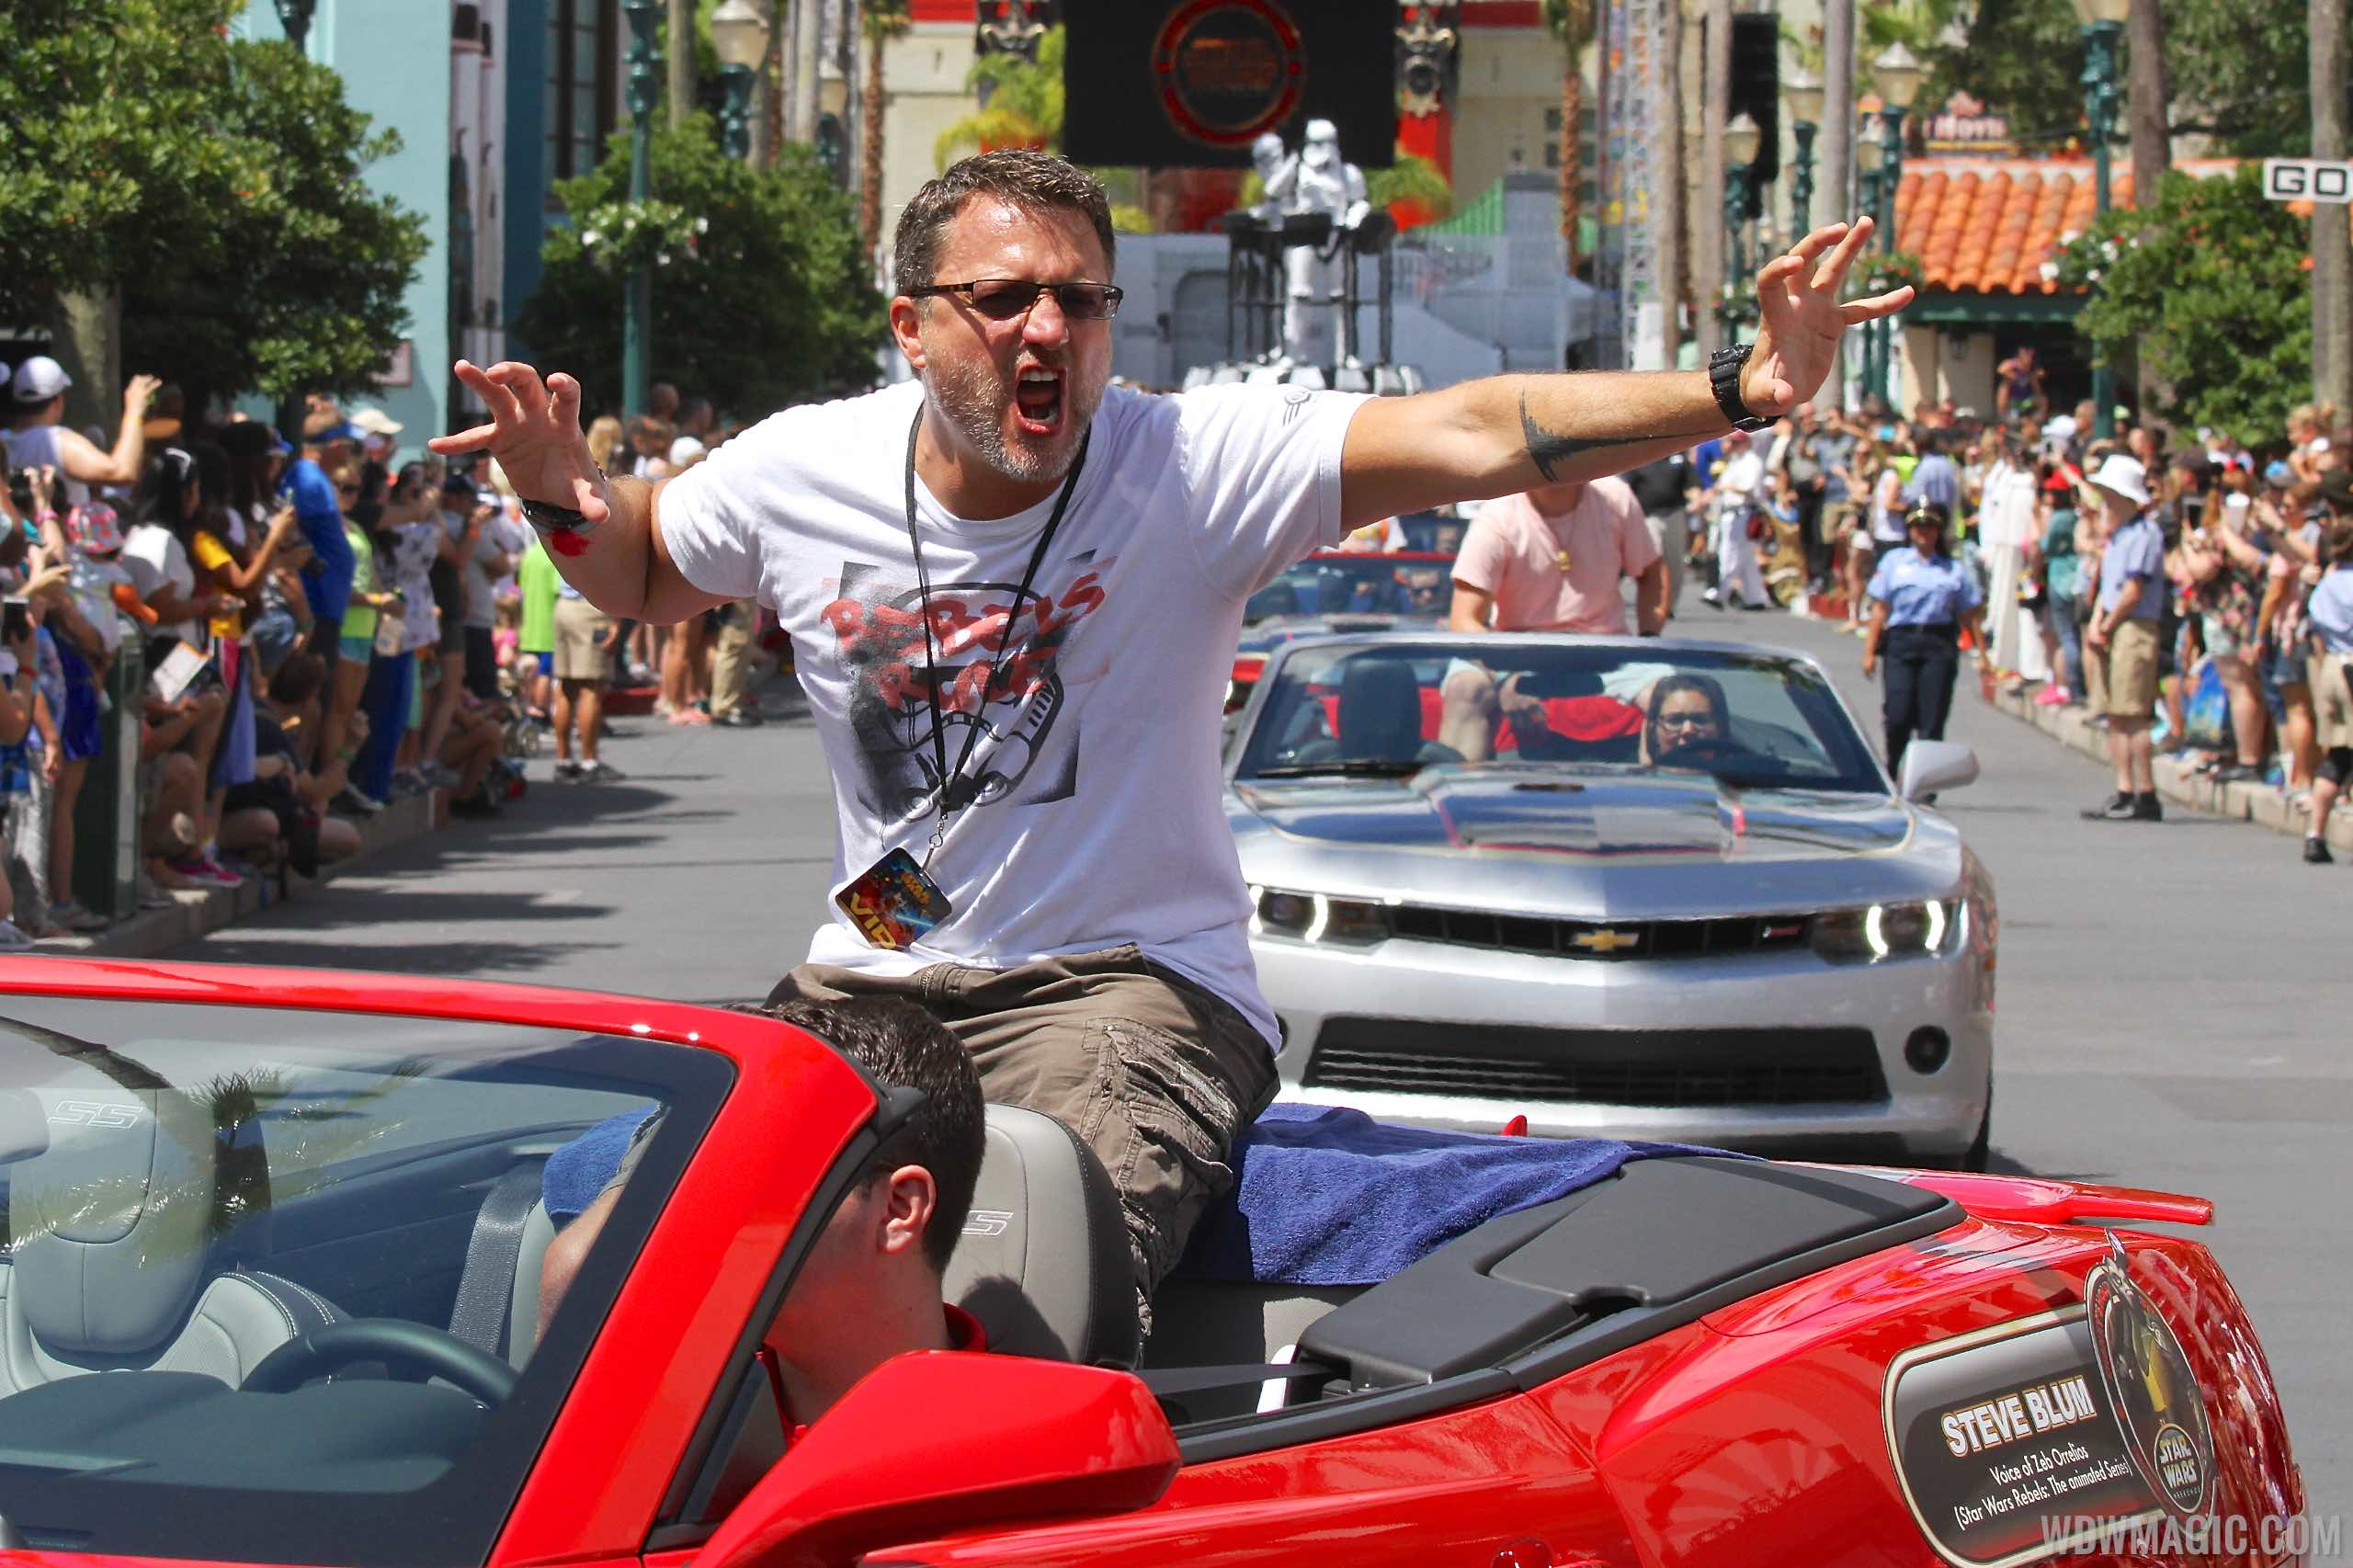 2015 Star Wars Weekends - Weekend 3 Legends of the Force motorcade celebrities - Steve Blum